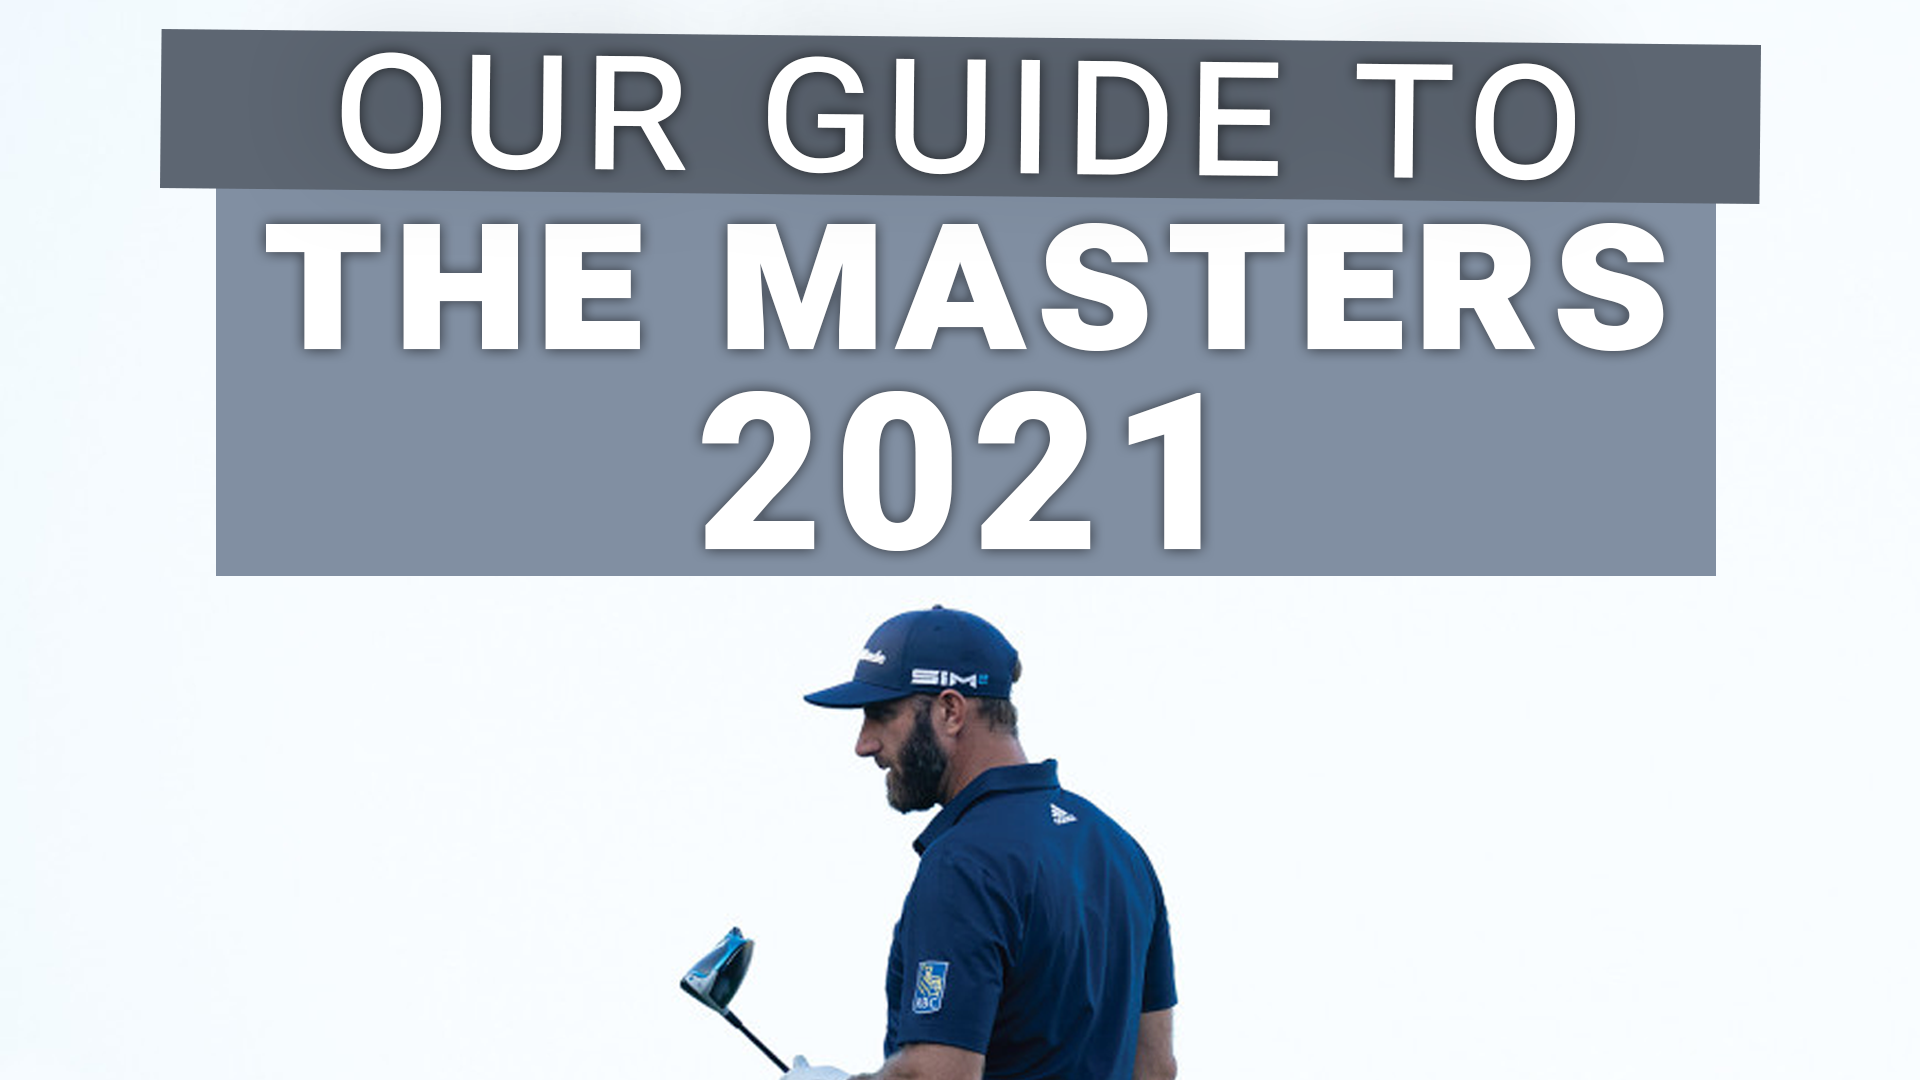 2021 Masters Tournament at Augusta National Golf Club.